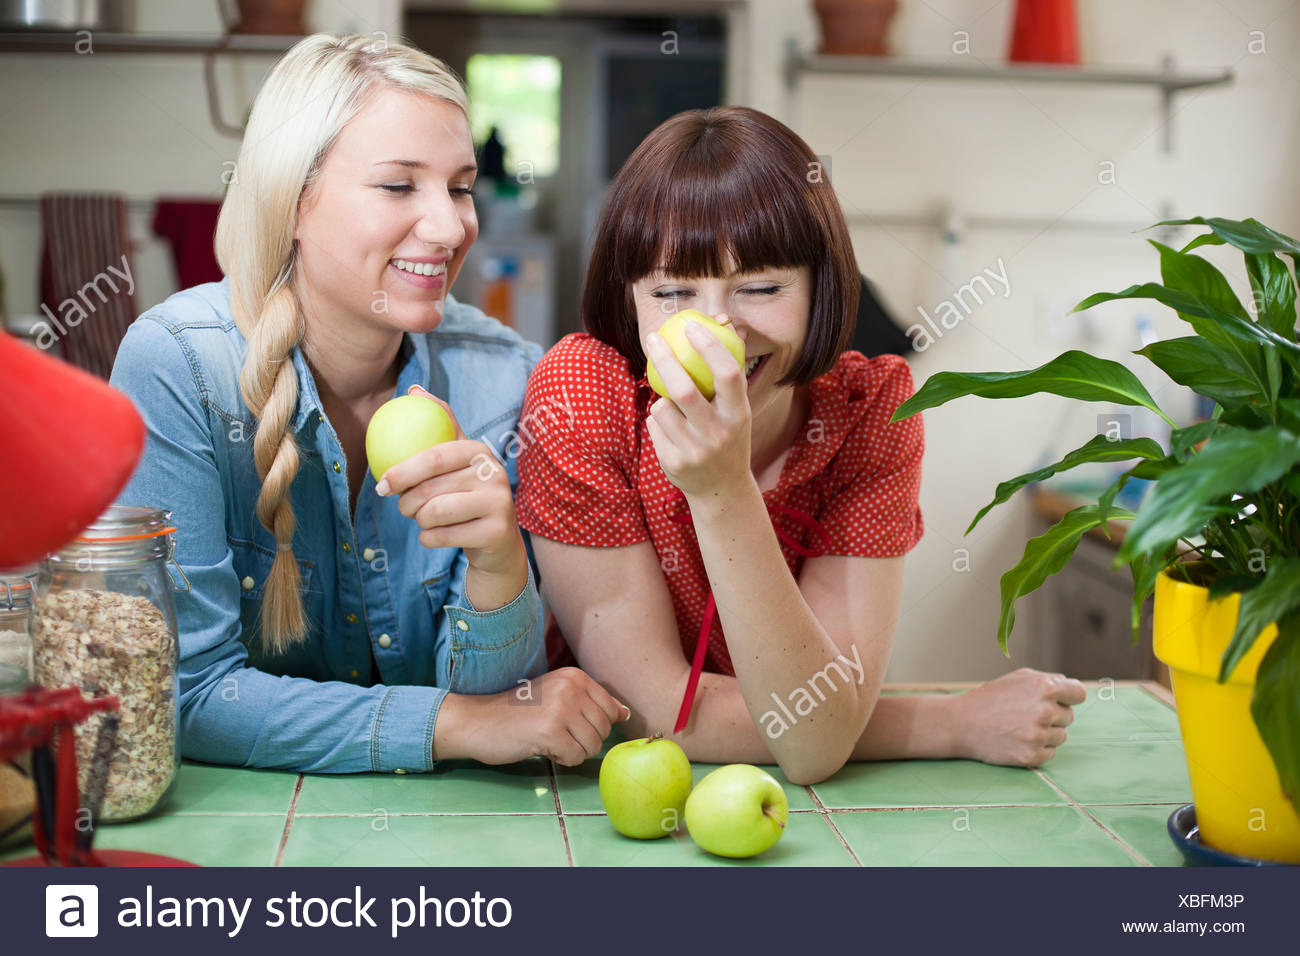 Female friends in kitchen with apples - Stock Image